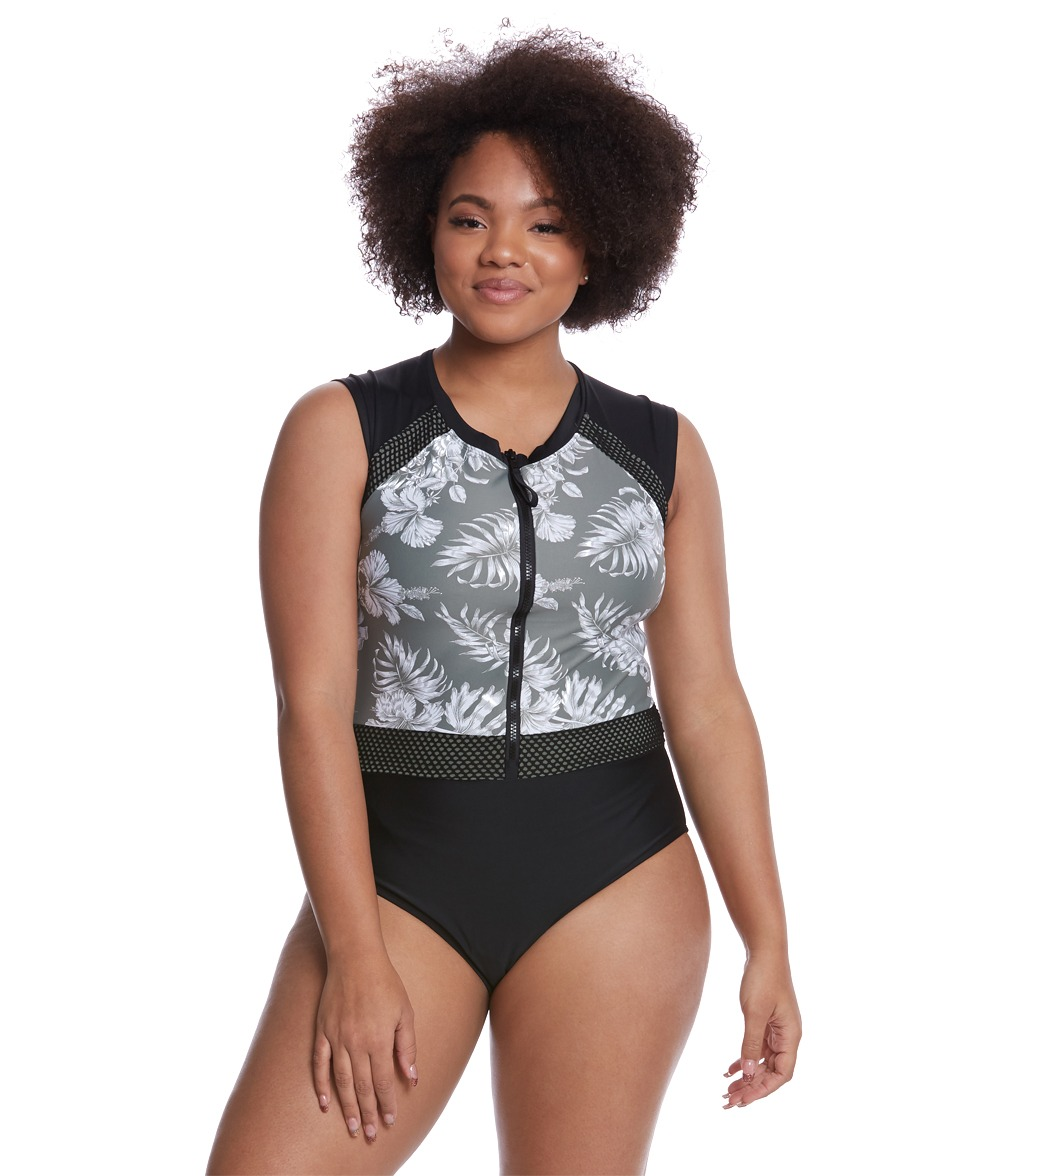 37187df6aebbc Skye Plus Size Moana Lilith One Piece Swimsuit at SwimOutlet.com ...